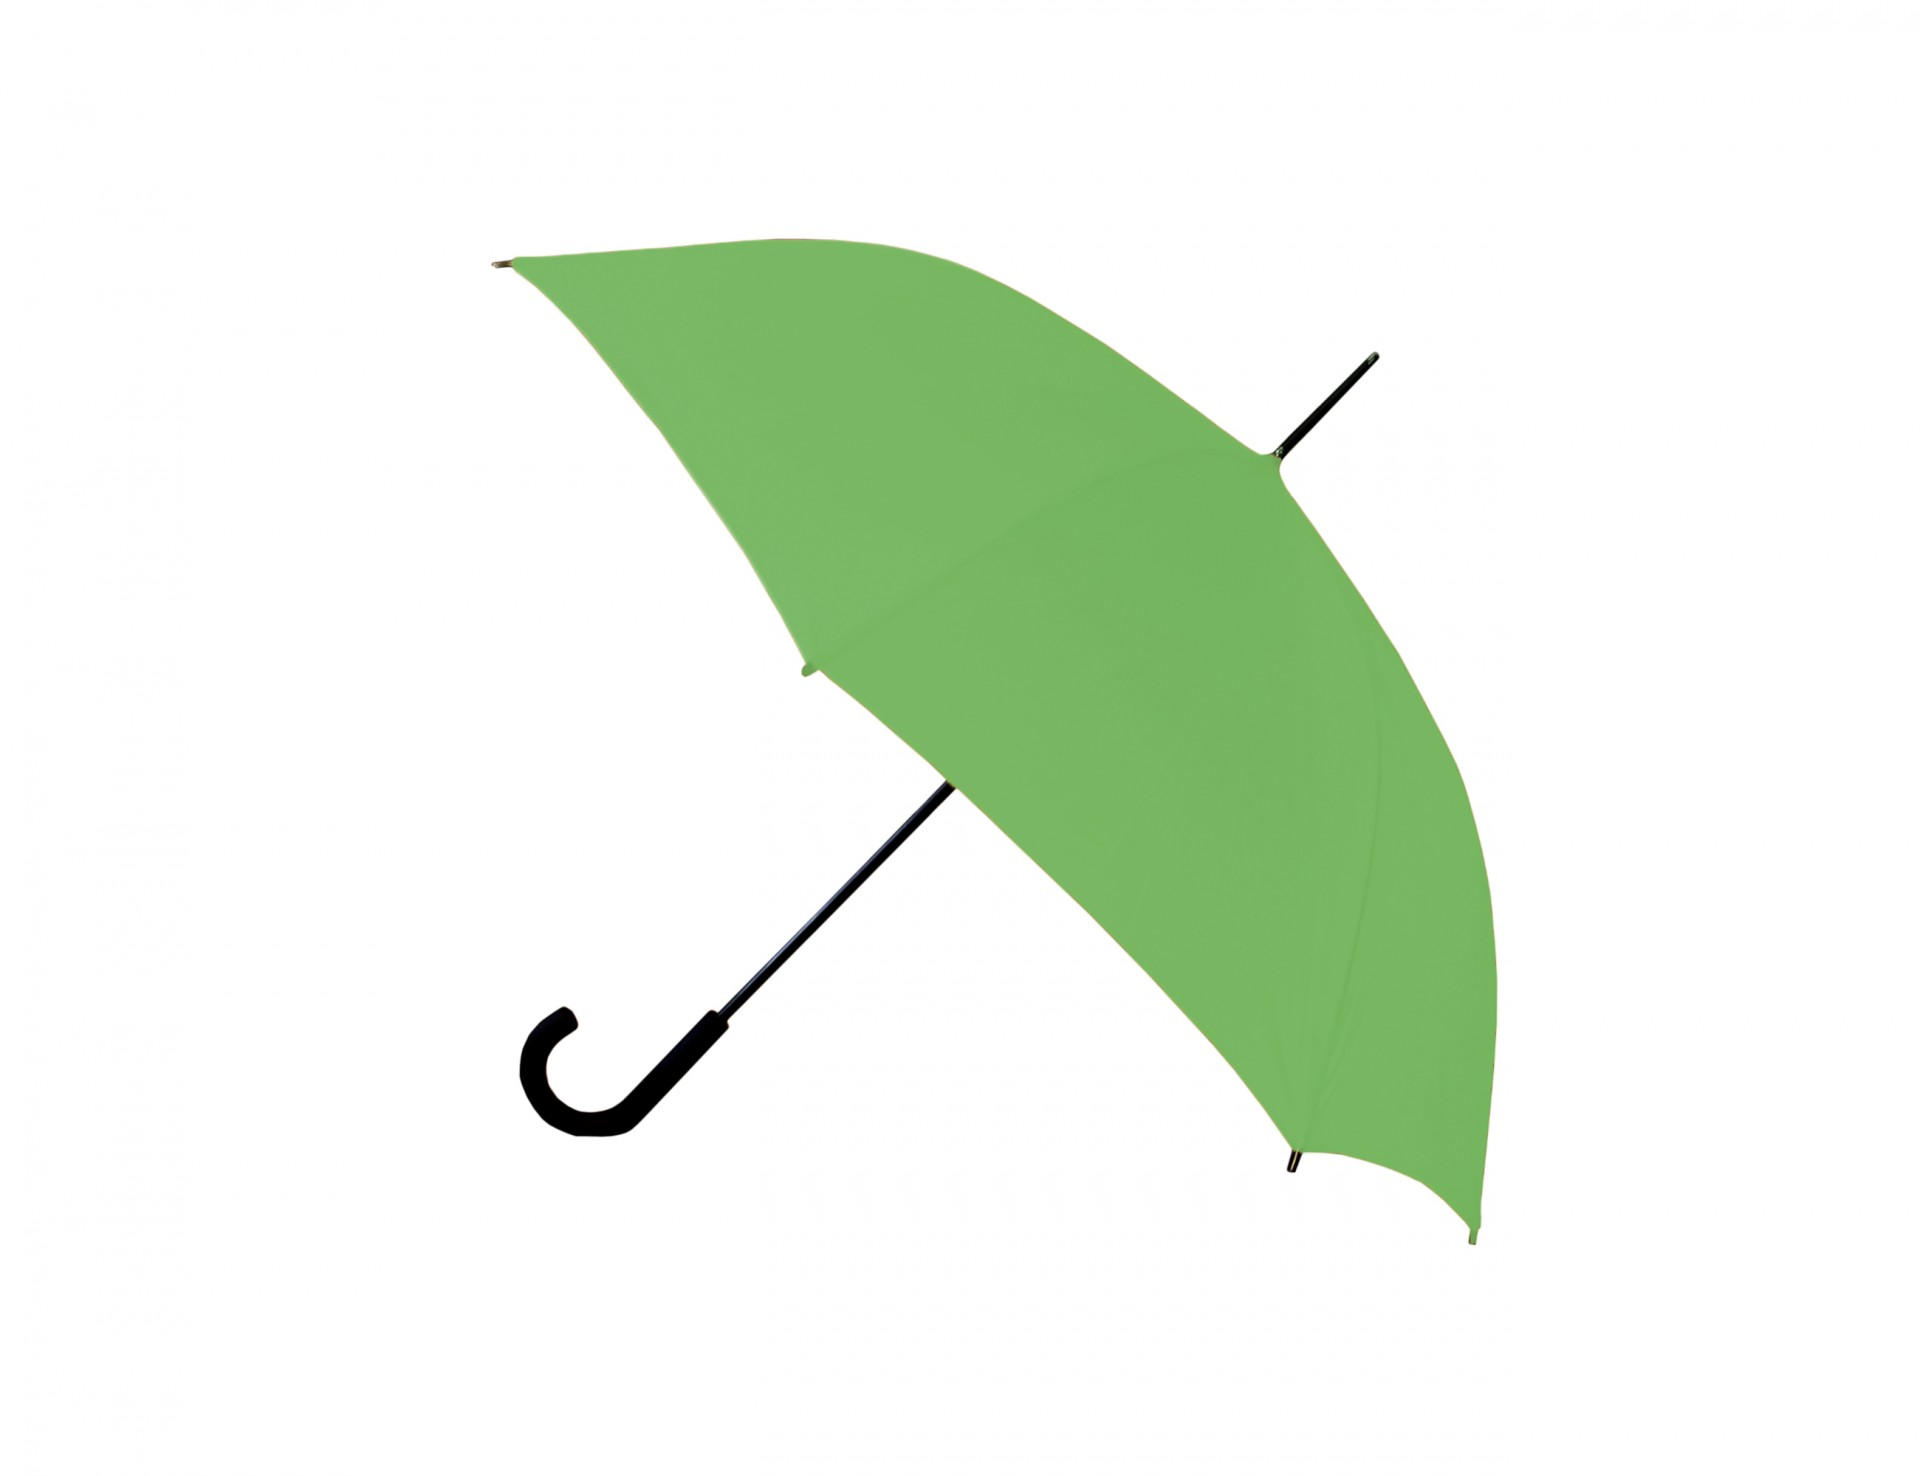 Green Umbrella Clipart Free Stock Photo.